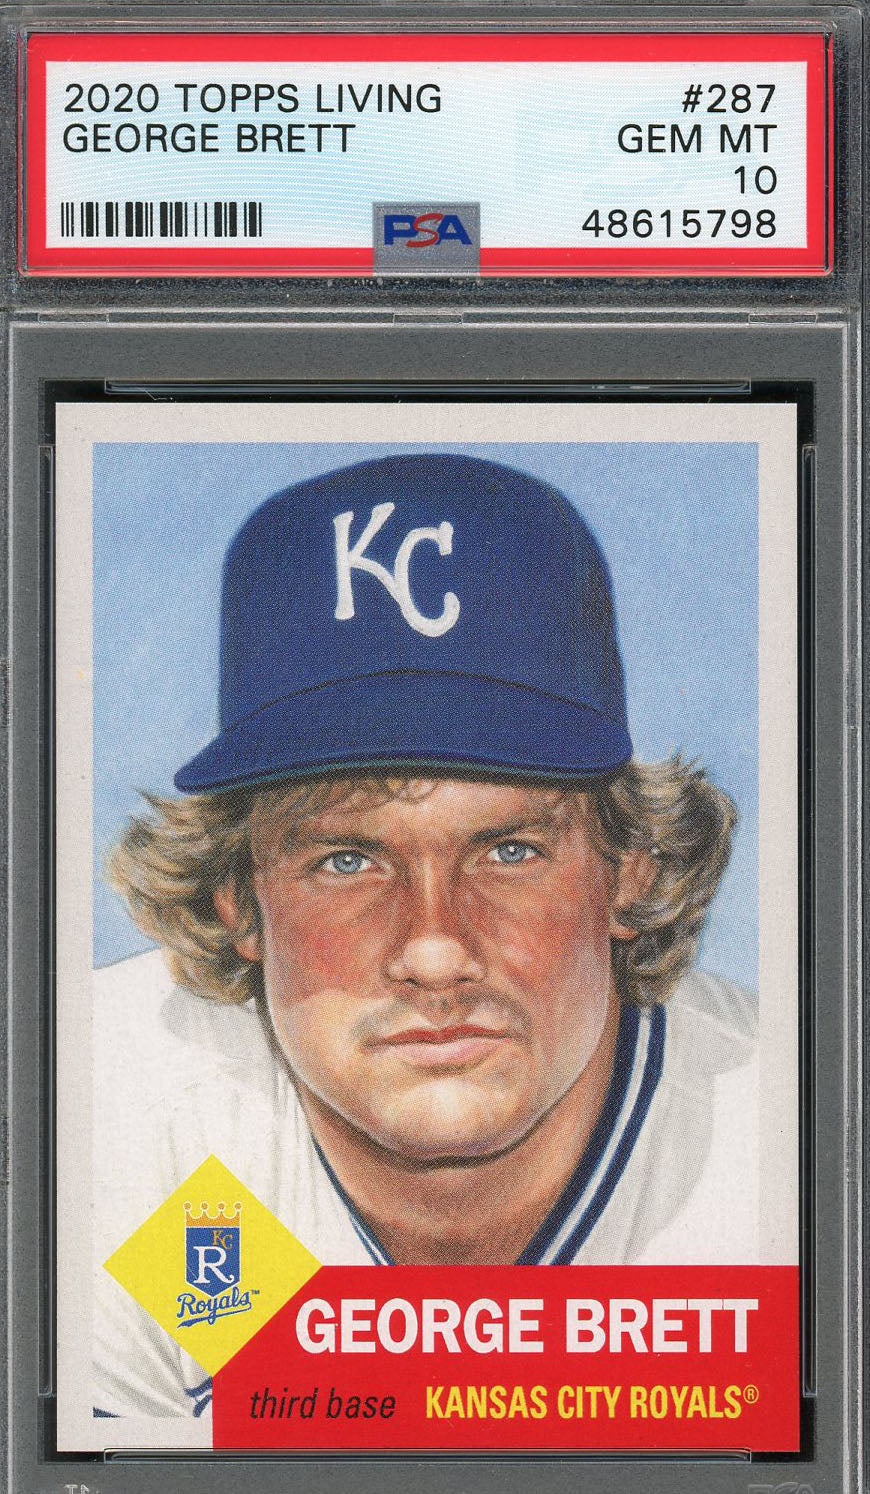 George Brett Kansas City Royals 2020 Topps Living Baseball Card #287 Graded PSA 10 GEM MINT-Powers Sports Memorabilia